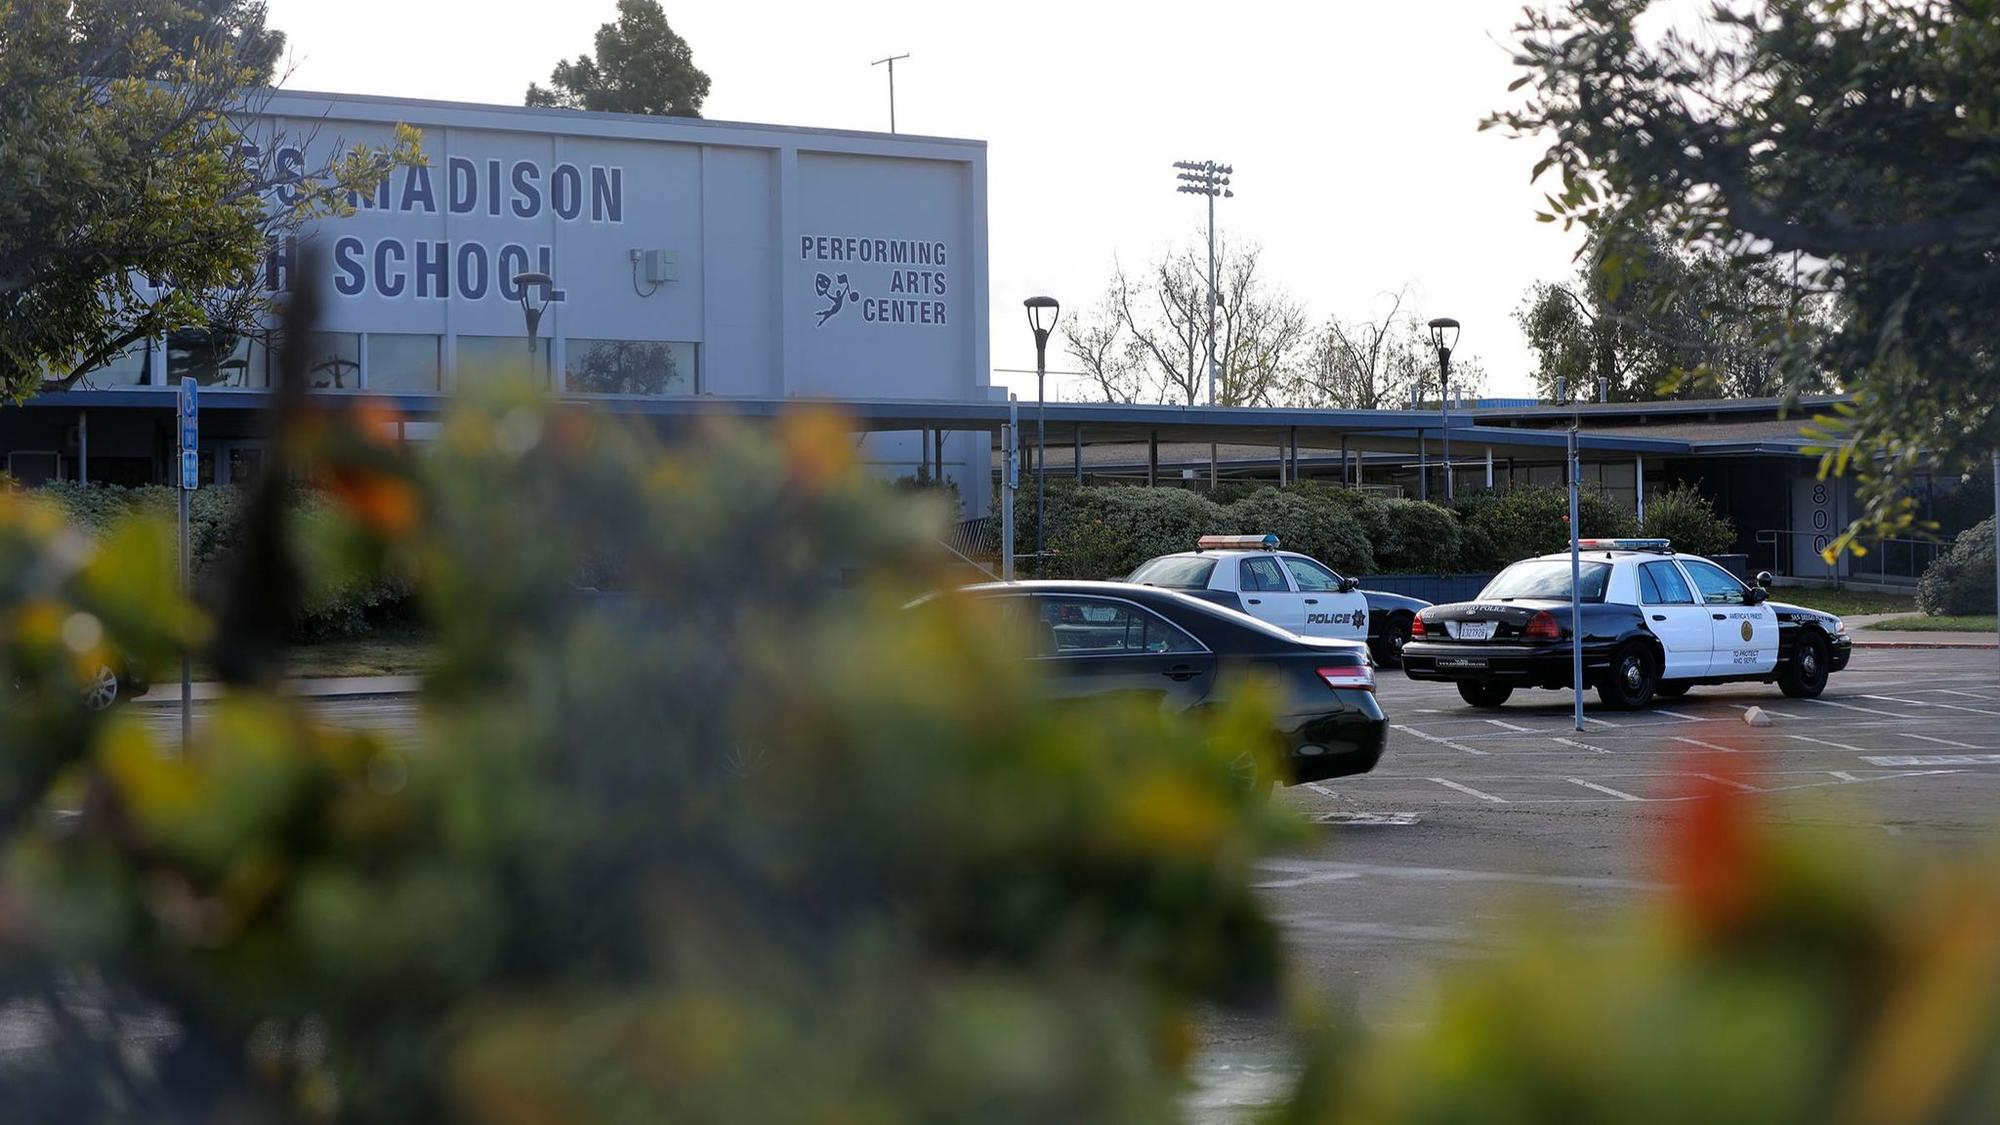 SAN DIEGO, CA: FEBRUARY 22, 2018: A police presence is evident at Madison High School in Clairemont